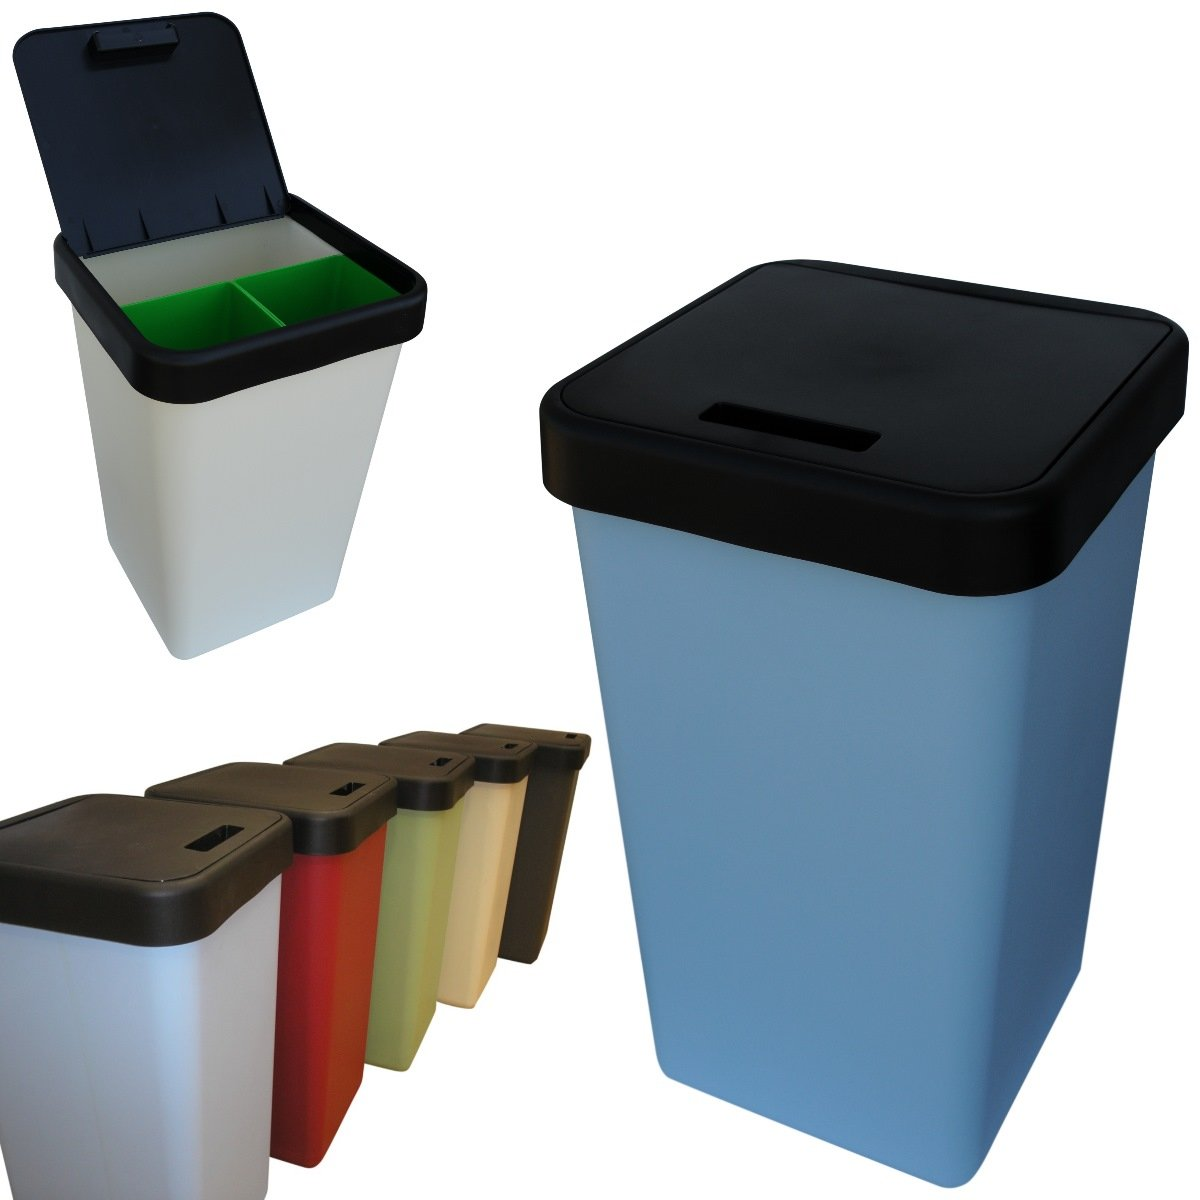 3 in 1 70L Kitchen Waste Bin, Compartments for Waste, Compost and ...